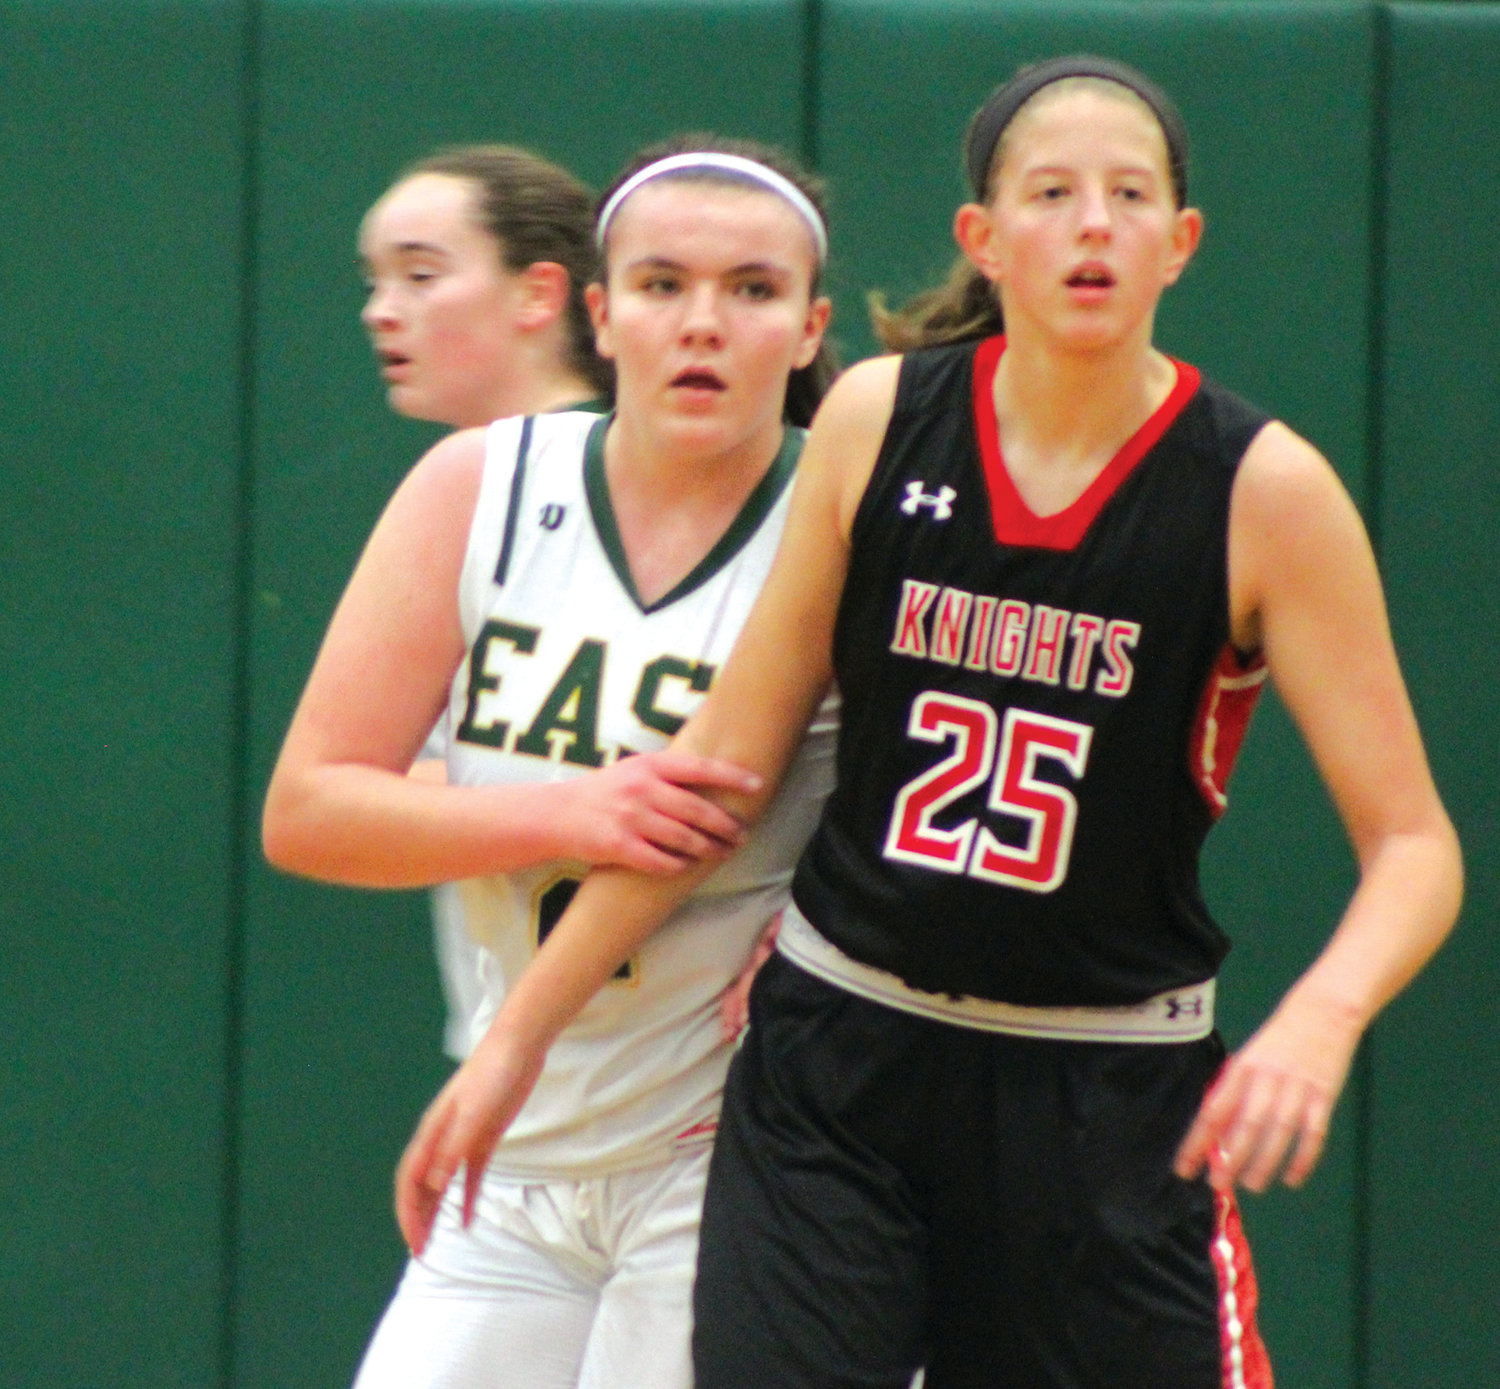 HOLIDAY BASKETBALL: Cranston East's Chloe Kitterick works past a PCD defender last week (above).